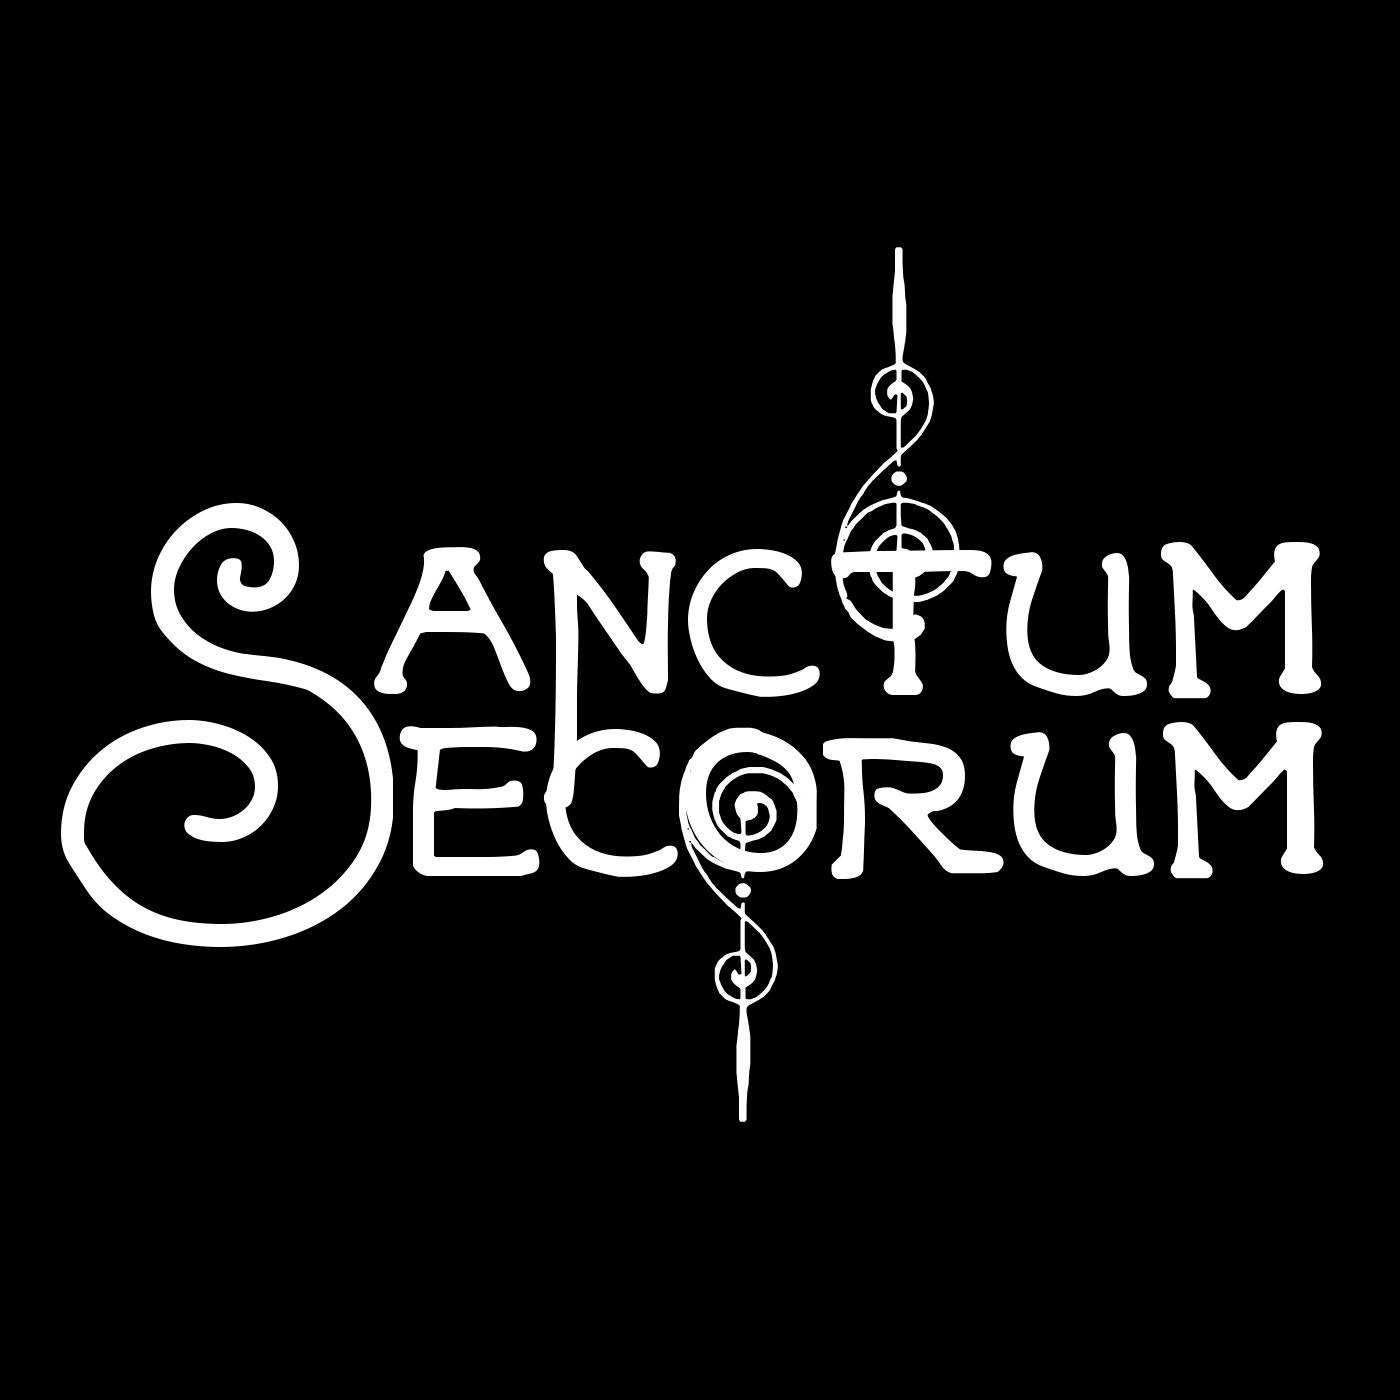 Sanctum Secorum #44 - The High Crusade (The Lost Episode)